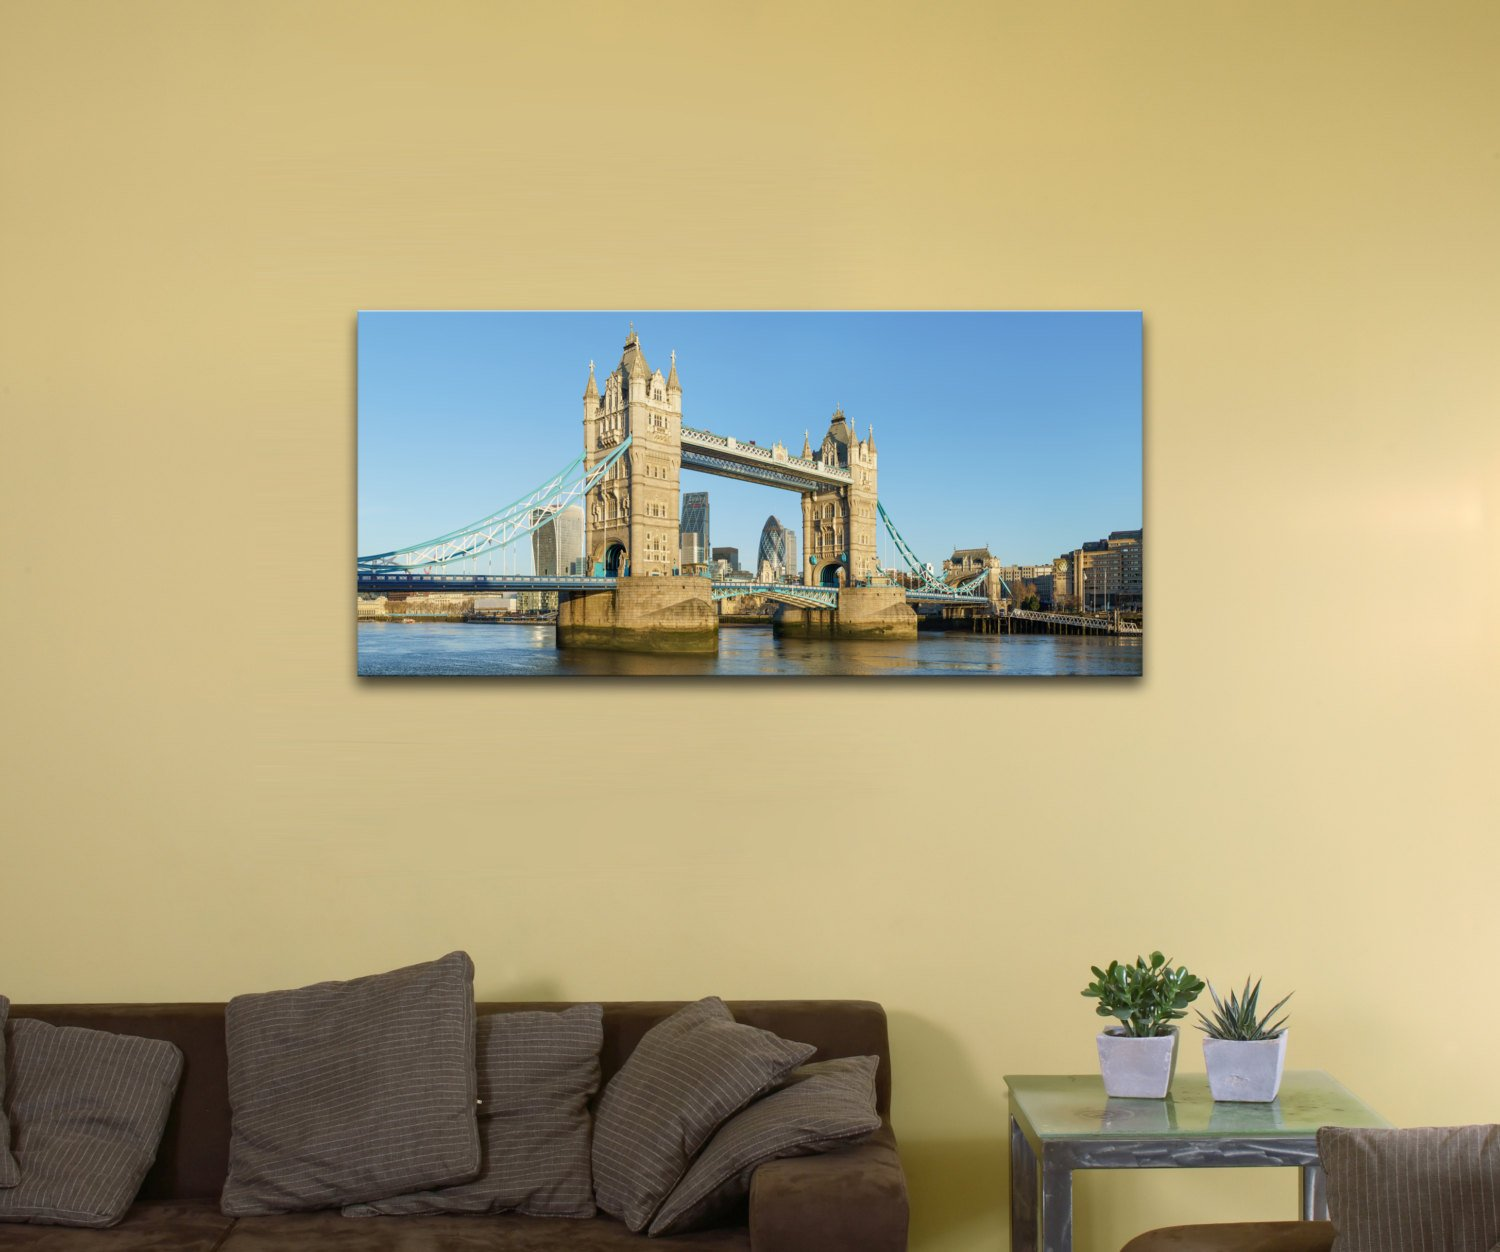 Tower Bridge, United Kingdom (14″ x 30″) – Canvas Wrap Print